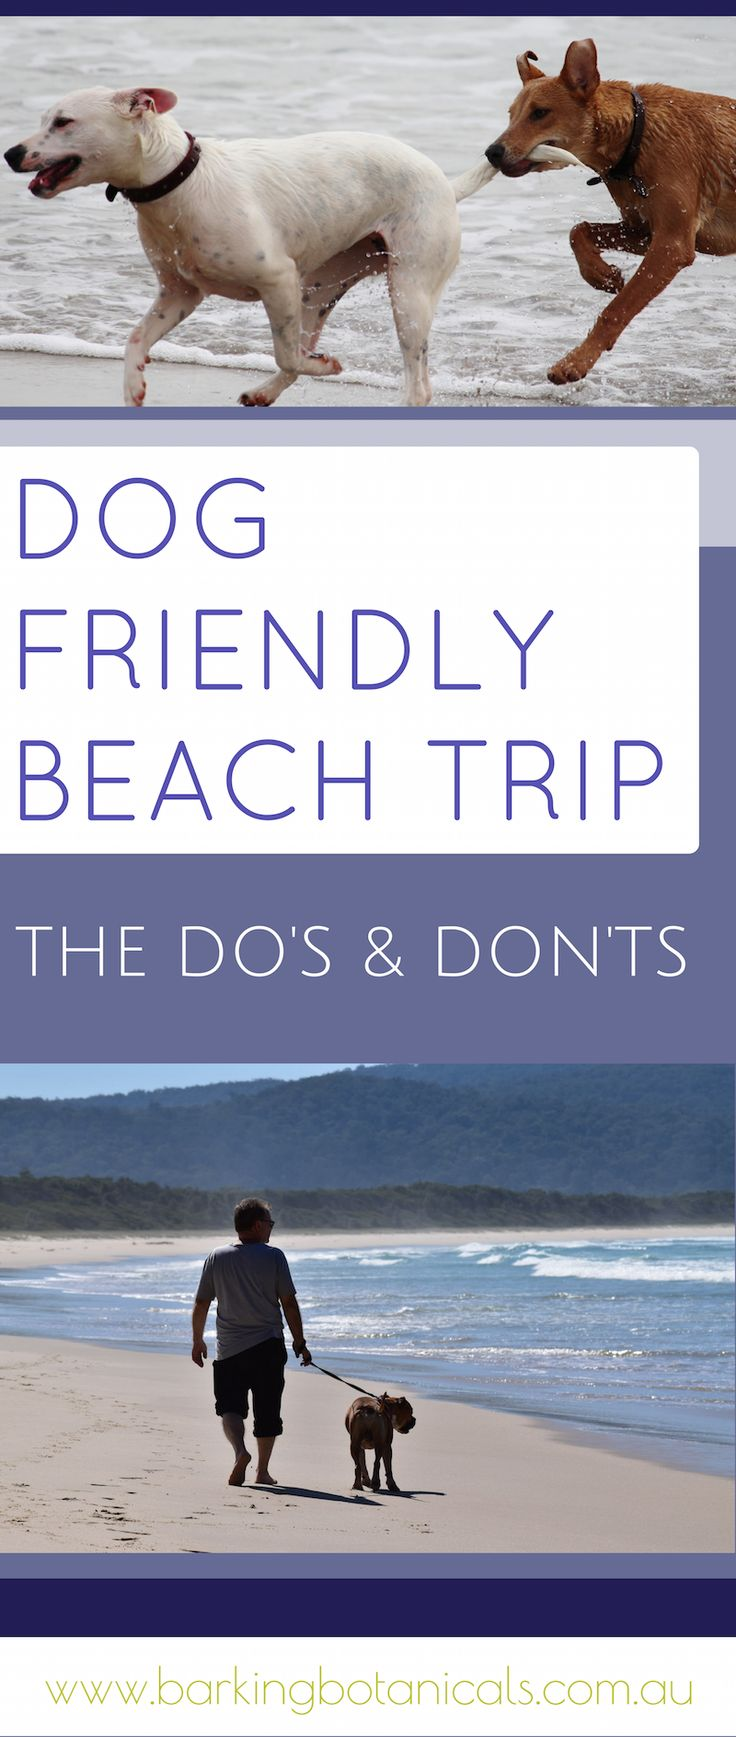 If you are planning to take your dog for a trip to a dog friendly beach, here are some helpful do's and don'ts to help keep your dog safe, healthy and happy at the beach.